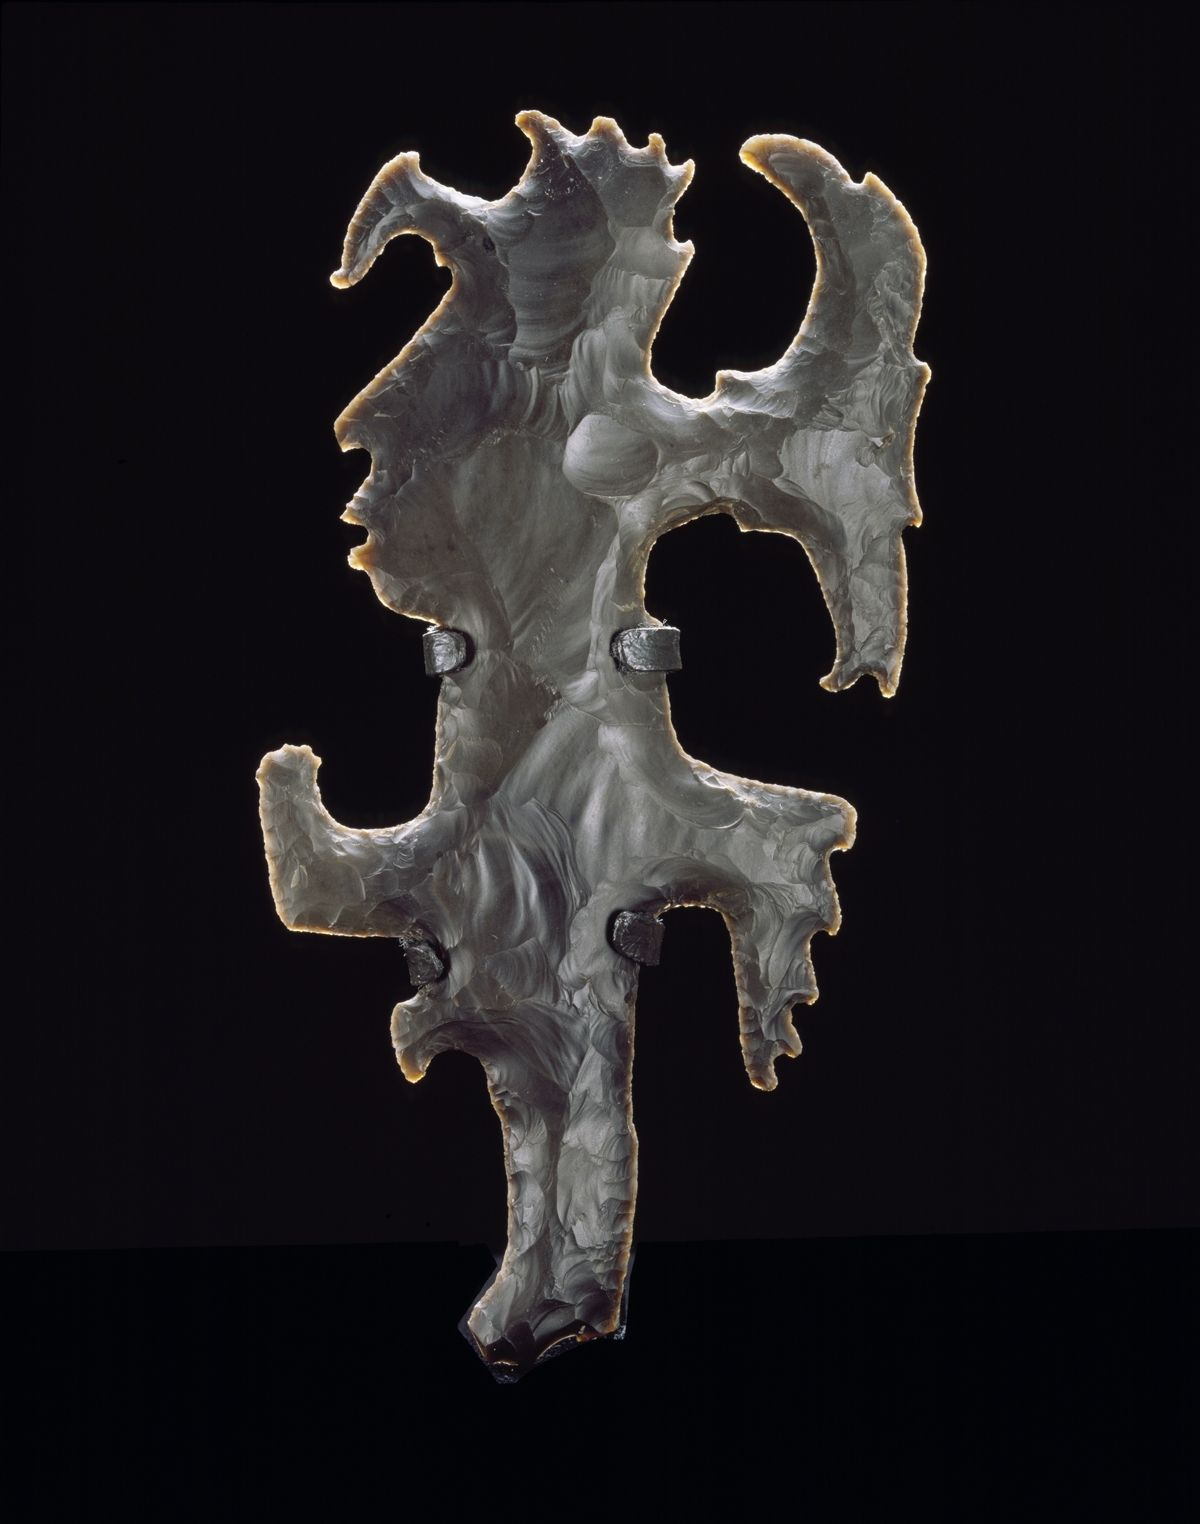 """Eccentric Flint resize - The Pre-Columbian Maya were excellent craftsmen, capable of producing exquisite pieces like this eccentric piece of chert / flint. Some obsidian and chert tools were used as knives, spear points, etc.; this object had no direct utilitarian purpose. Archaeologists and anthropologists like to classify items like these as """"ceremonial,"""" meaning they had a purpose we can only guess at. Perhaps it was used as a symbol of political power, hence the term scepter."""